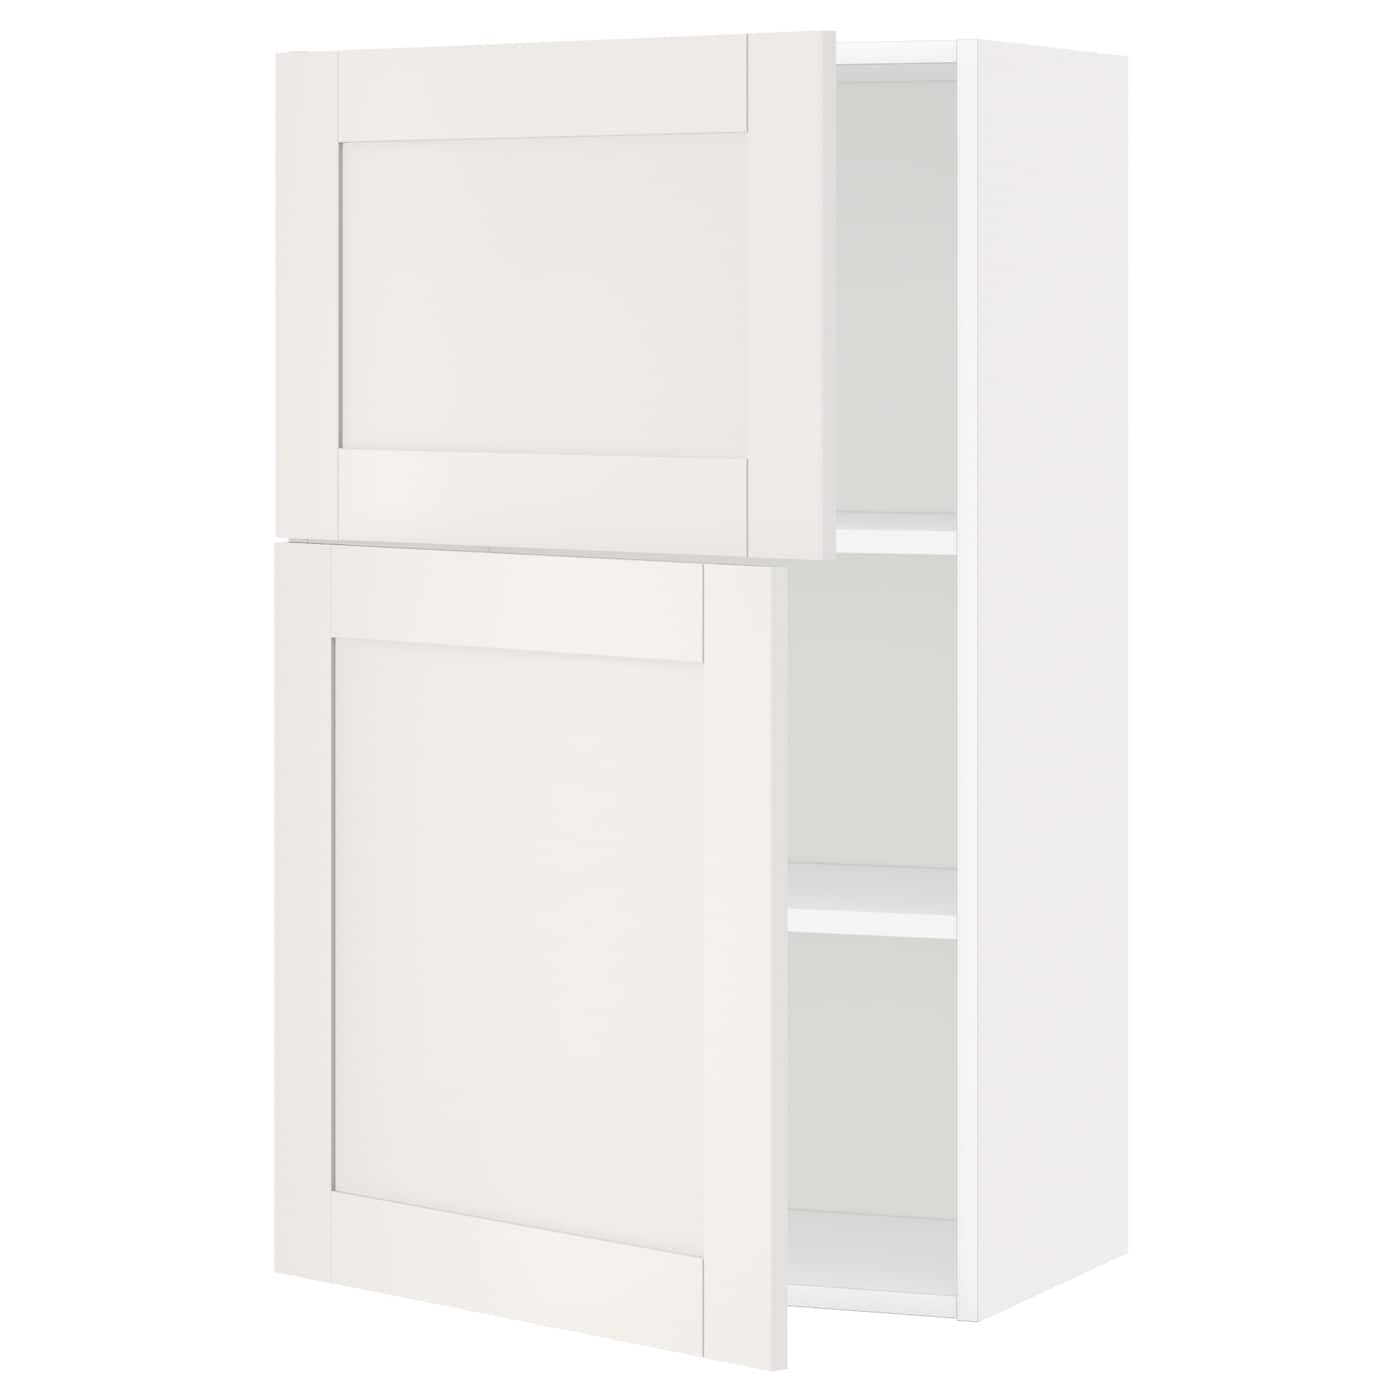 ikea wall cabinets metod wall cabinet with shelves 2 doors white s 228 vedal 11730